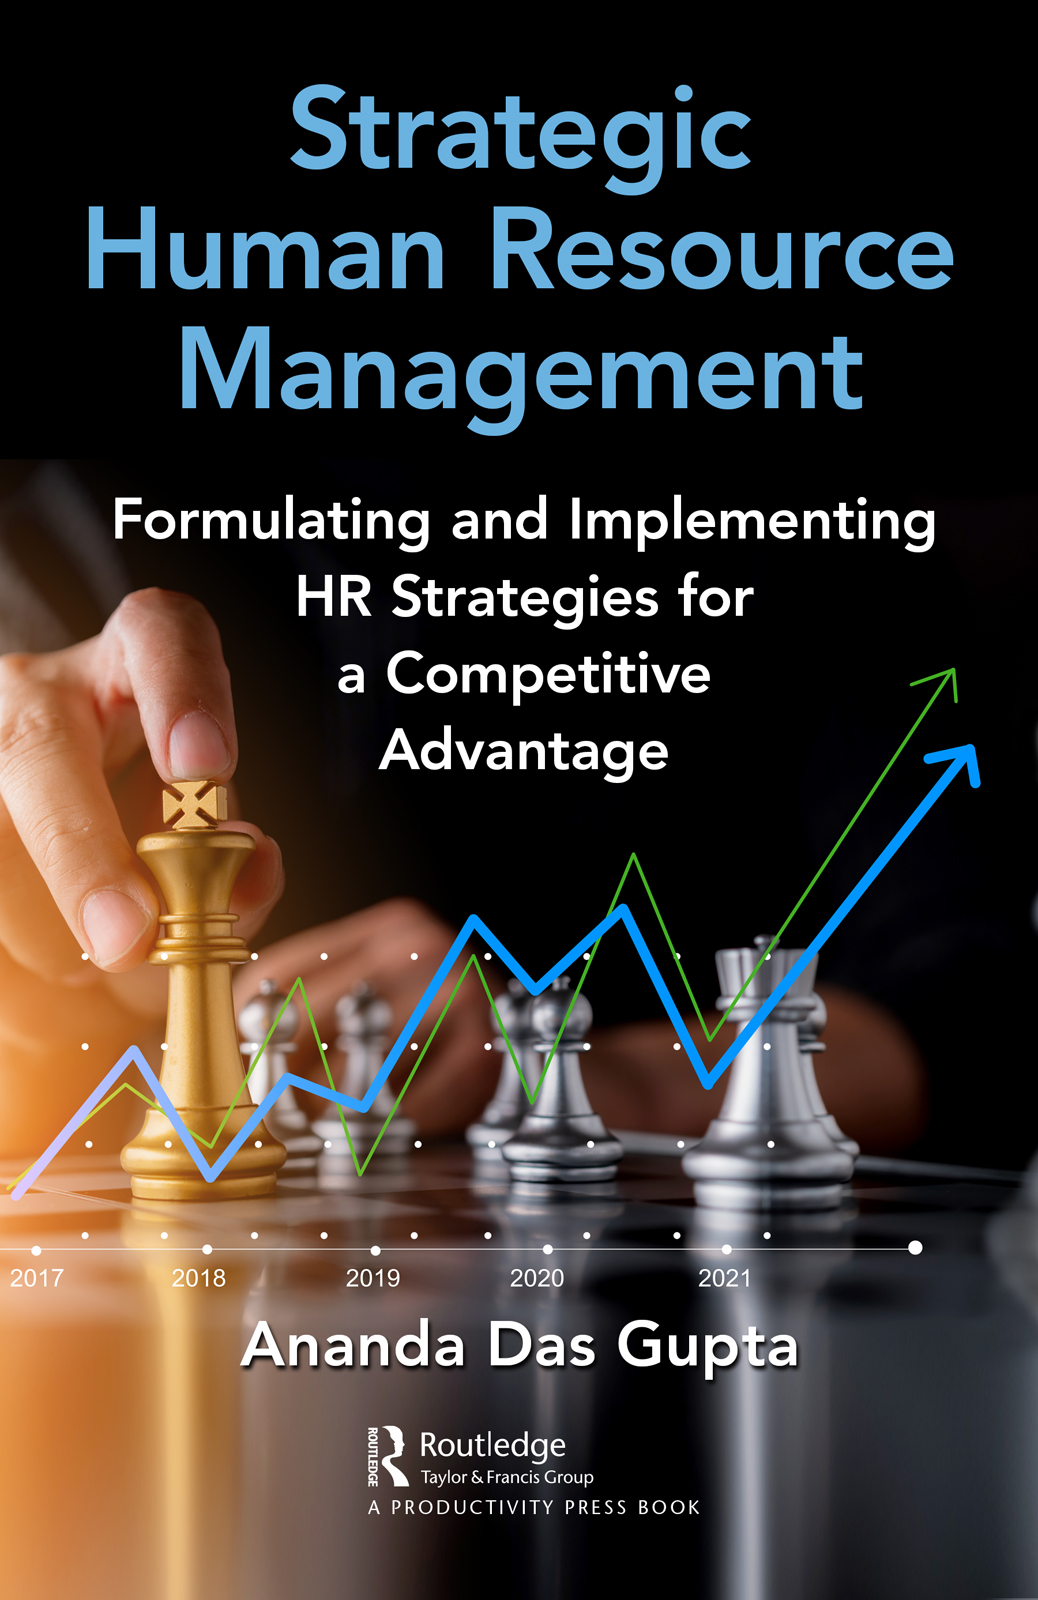 Strategic Human Resource Management: Formulating and Implementing HR Strategies for a Competitive Advantage book cover